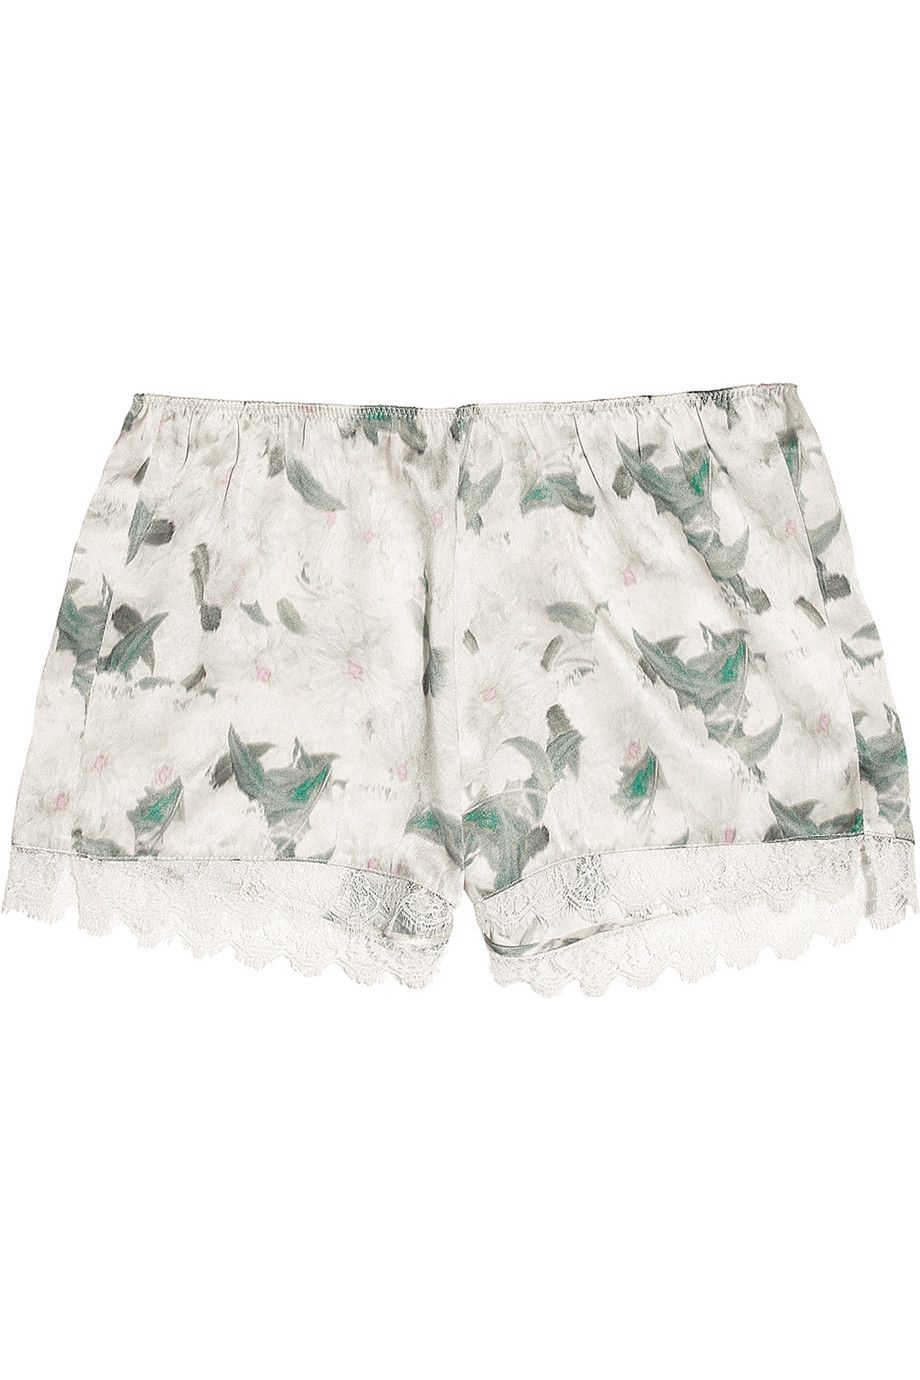 Lace-trimmed floral print silk-satin shorts, classic Erdem. #london #contemporary